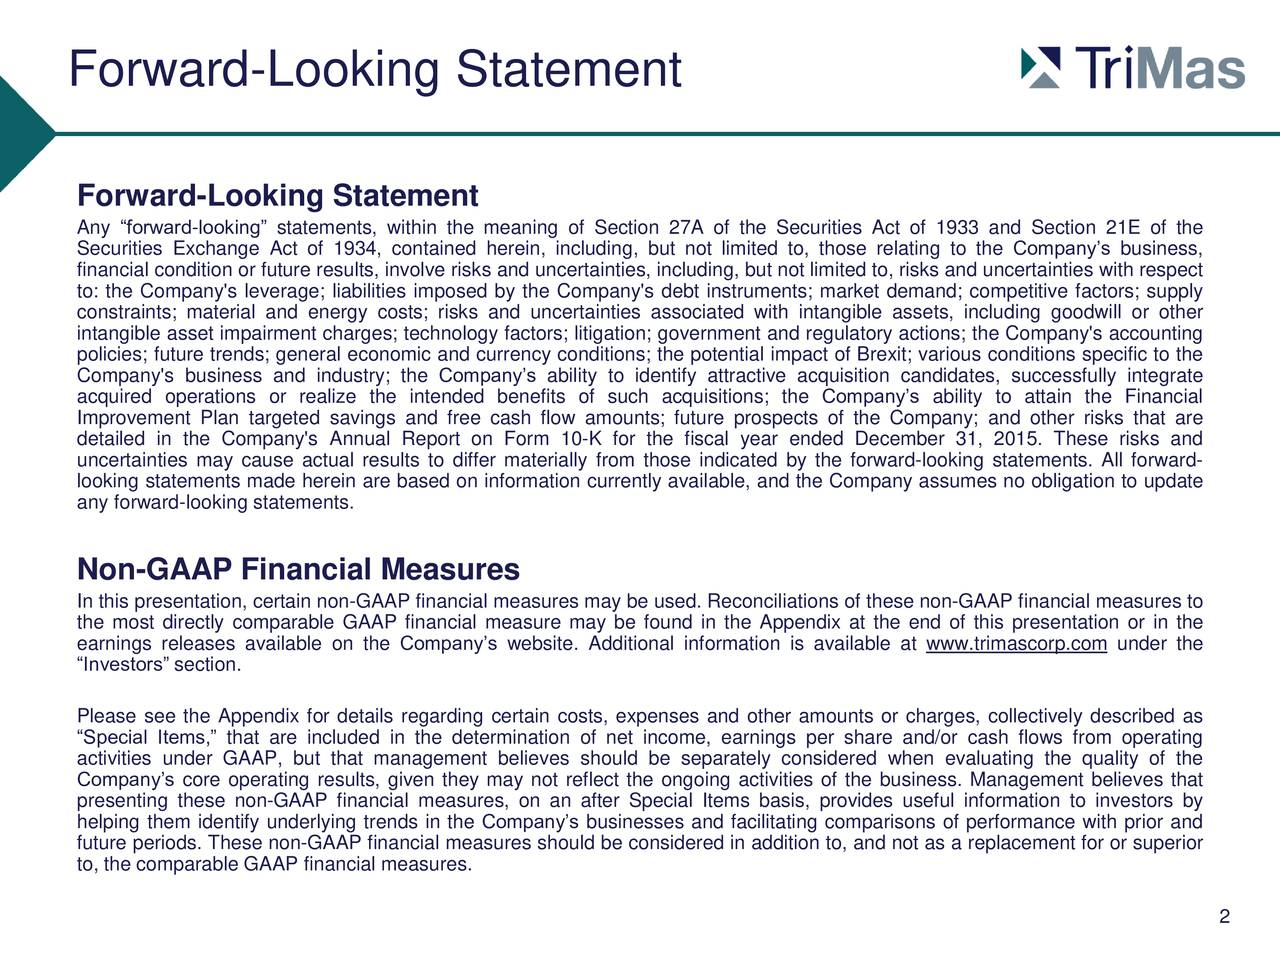 Forward-Looking Statement Any forward-looking statements, within the meaning of Section 27A of the Securities Act of 1933 and Section 21E of the Securities Exchange Act of 1934, contained herein, including, but not limited to, those relating to the Companys business, financial condition or future results, involve risks and uncertainties, including, but not limited to, risks and uncertainties with respect to: the Company's leverage; liabilities imposed by the Company's debt instruments; market demand; competitive factors; supply constraints; material and energy costs; risks and uncertainties associated with intangible assets, including goodwill or other intangible asset impairment charges; technology factors; litigation; government and regulatory actions; the Company's accounting policies; future trends; general economic and currency conditions; the potential impact of Brexit; various conditions specific to the Company's business and industry; the Companys ability to identify attractive acquisition candidates, successfully integrate acquired operations or realize the intended benefits of such acquisitions; the Companys ability to attain the Financial Improvement Plan targeted savings and free cash flow amounts; future prospects of the Company; and other risks that are detailed in the Company's Annual Report on Form 10-K for the fiscal year ended December 31, 2015. These risks and uncertainties may cause actual results to differ materially from those indicated by the forward-looking statements. All forward- looking statements made herein are based on information currently available, and the Company assumes no obligation to update any forward-looking statements. Non-GAAP Financial Measures In this presentation, certain non-GAAP financial measures may be used. Reconciliations of these non-GAAP financial measures to the most directly comparable GAAP financial measure may be found in the Appendix at the end of this presentation or in the earnings releases available on the